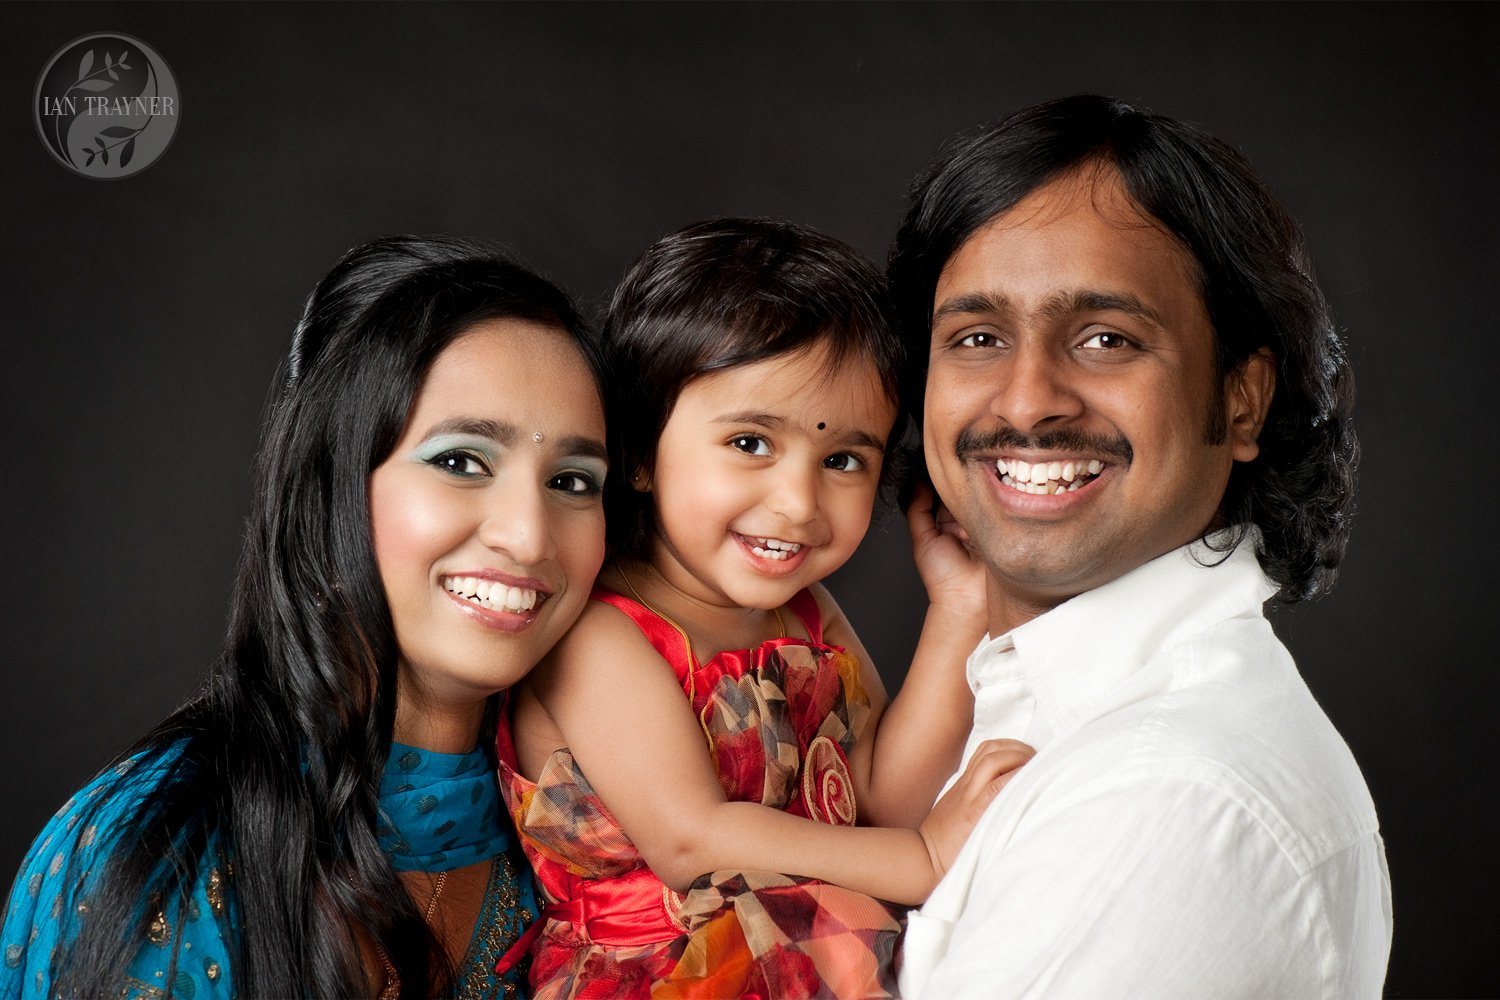 Happy asian family photographed in my studio. Parents and cute daugher.